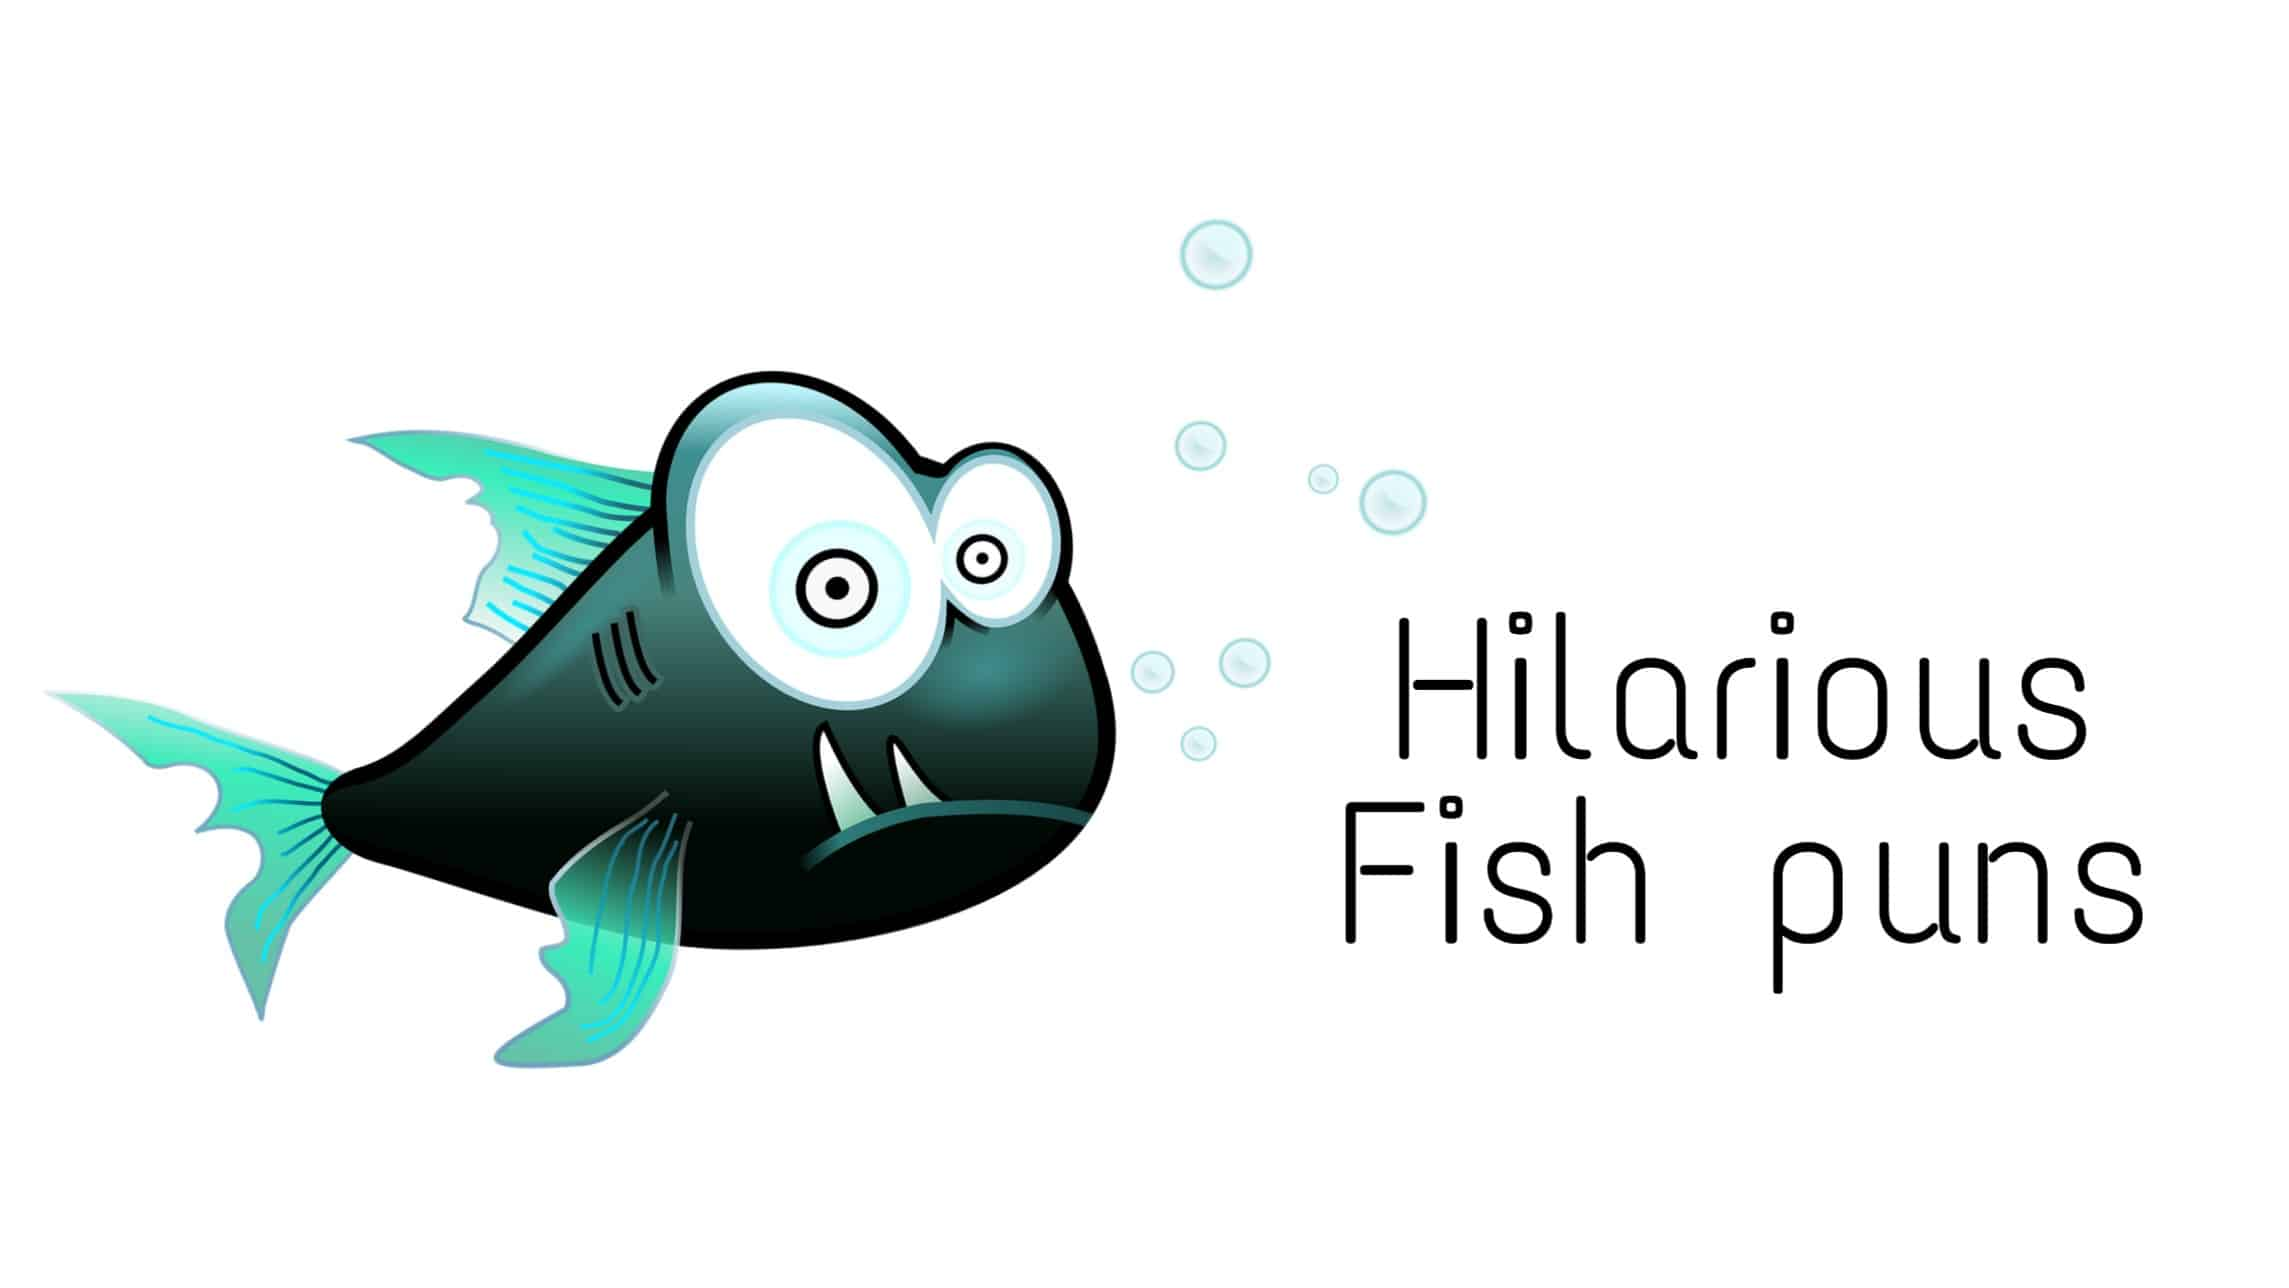 hilarious fish puns